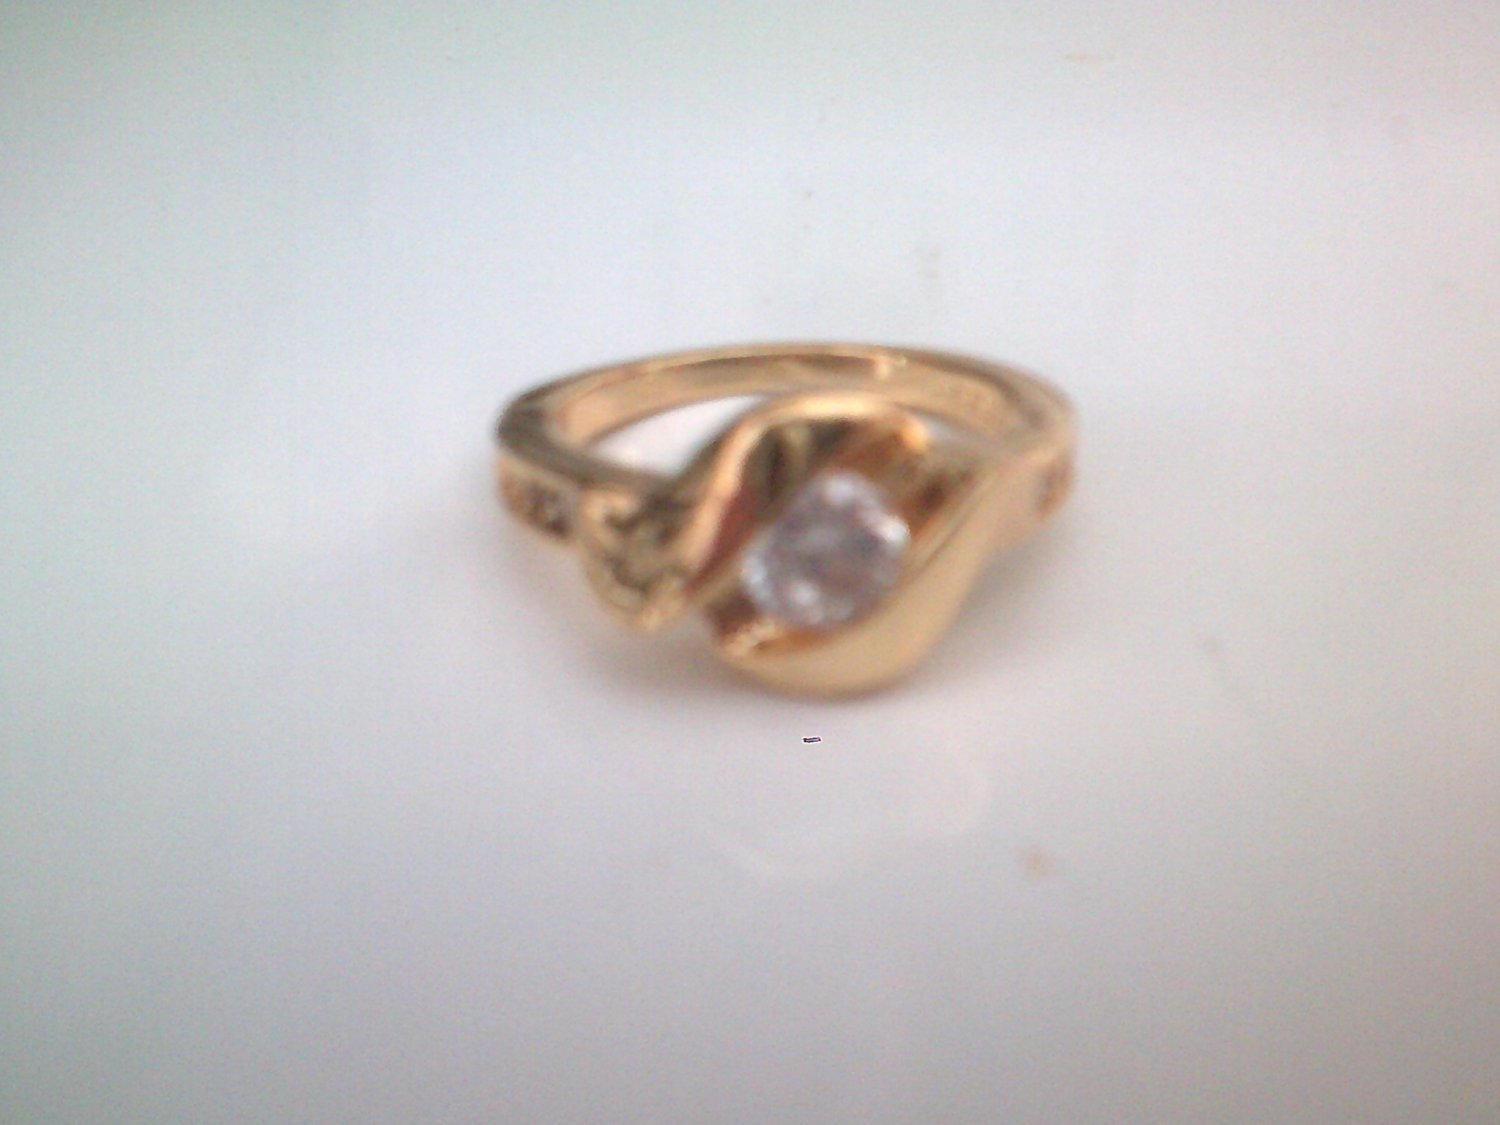 18k gold plated ring with clear cubic zirconia stones size 7